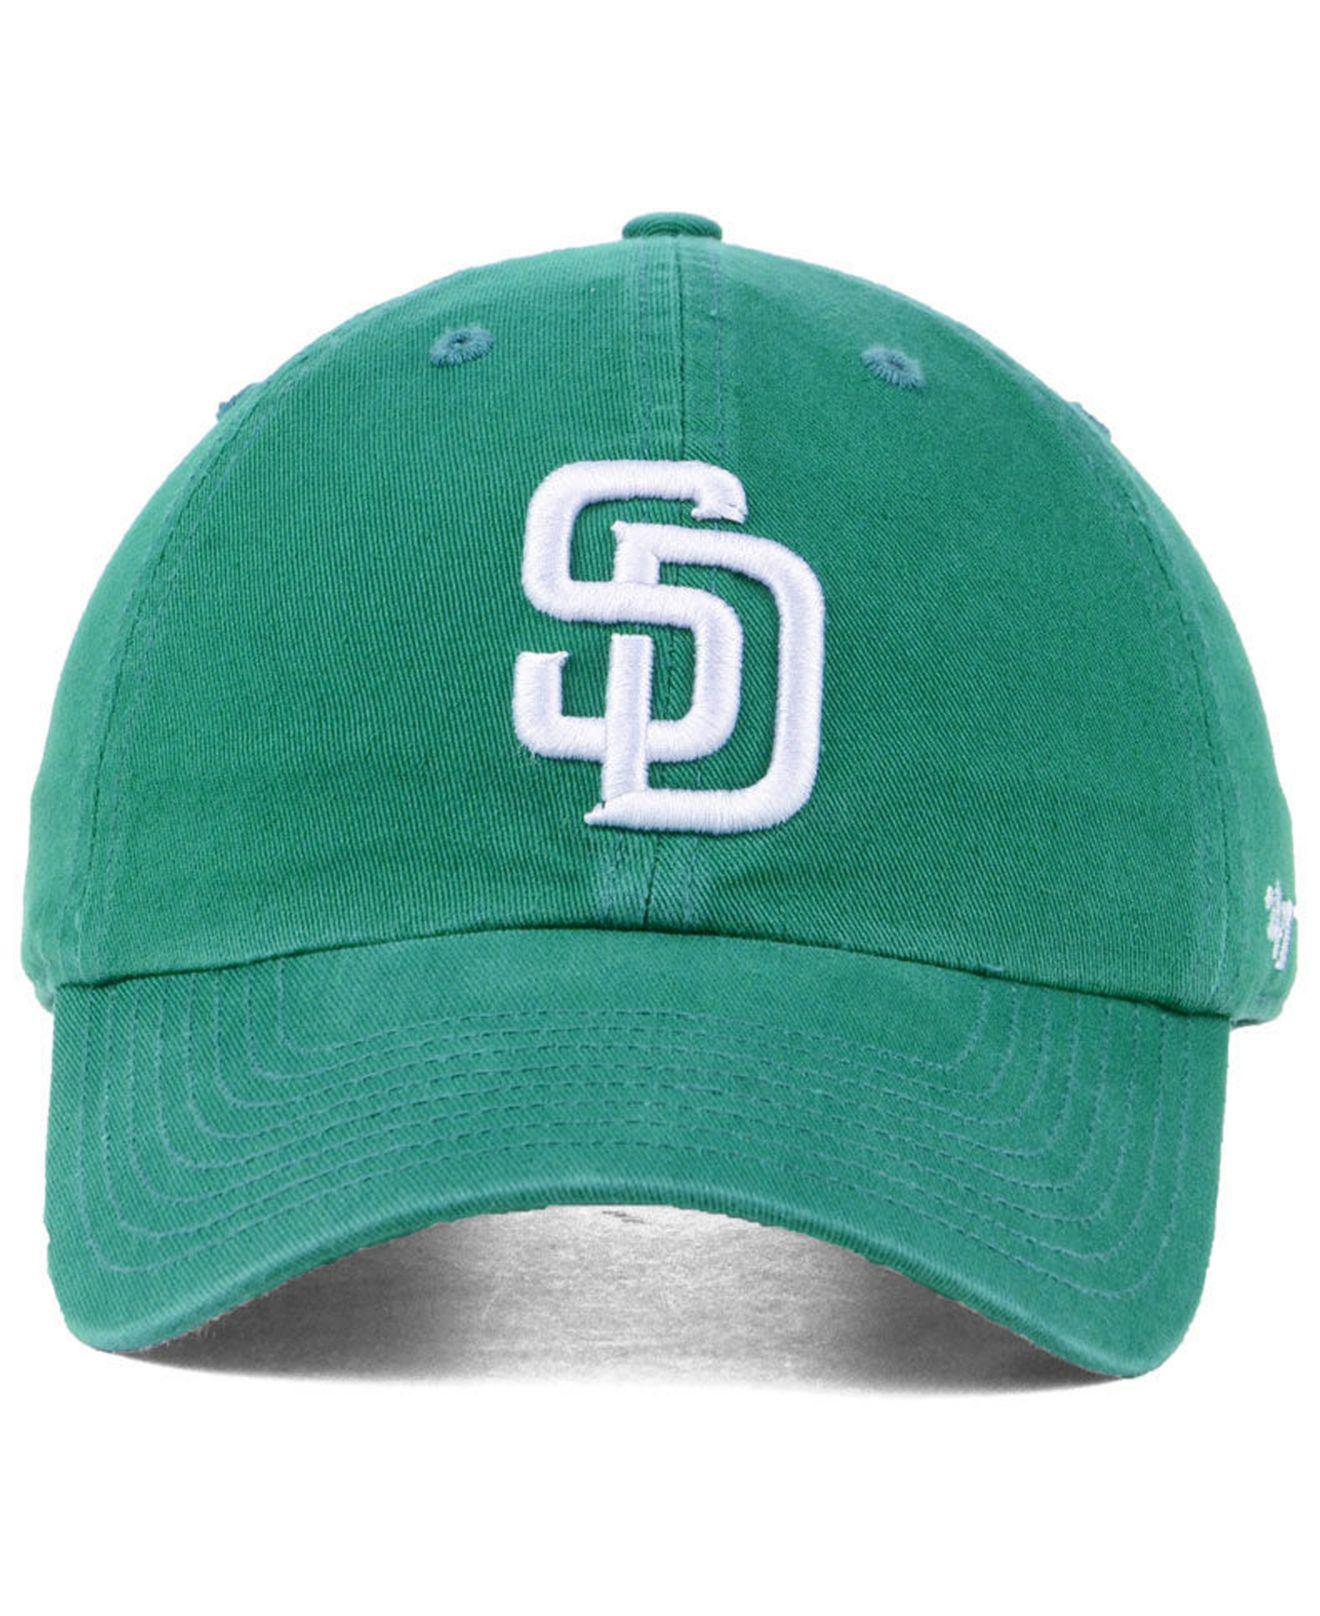 699f488c62b87 Lyst - 47 Brand San Diego Padres Kelly White Clean Up Cap in Green ...